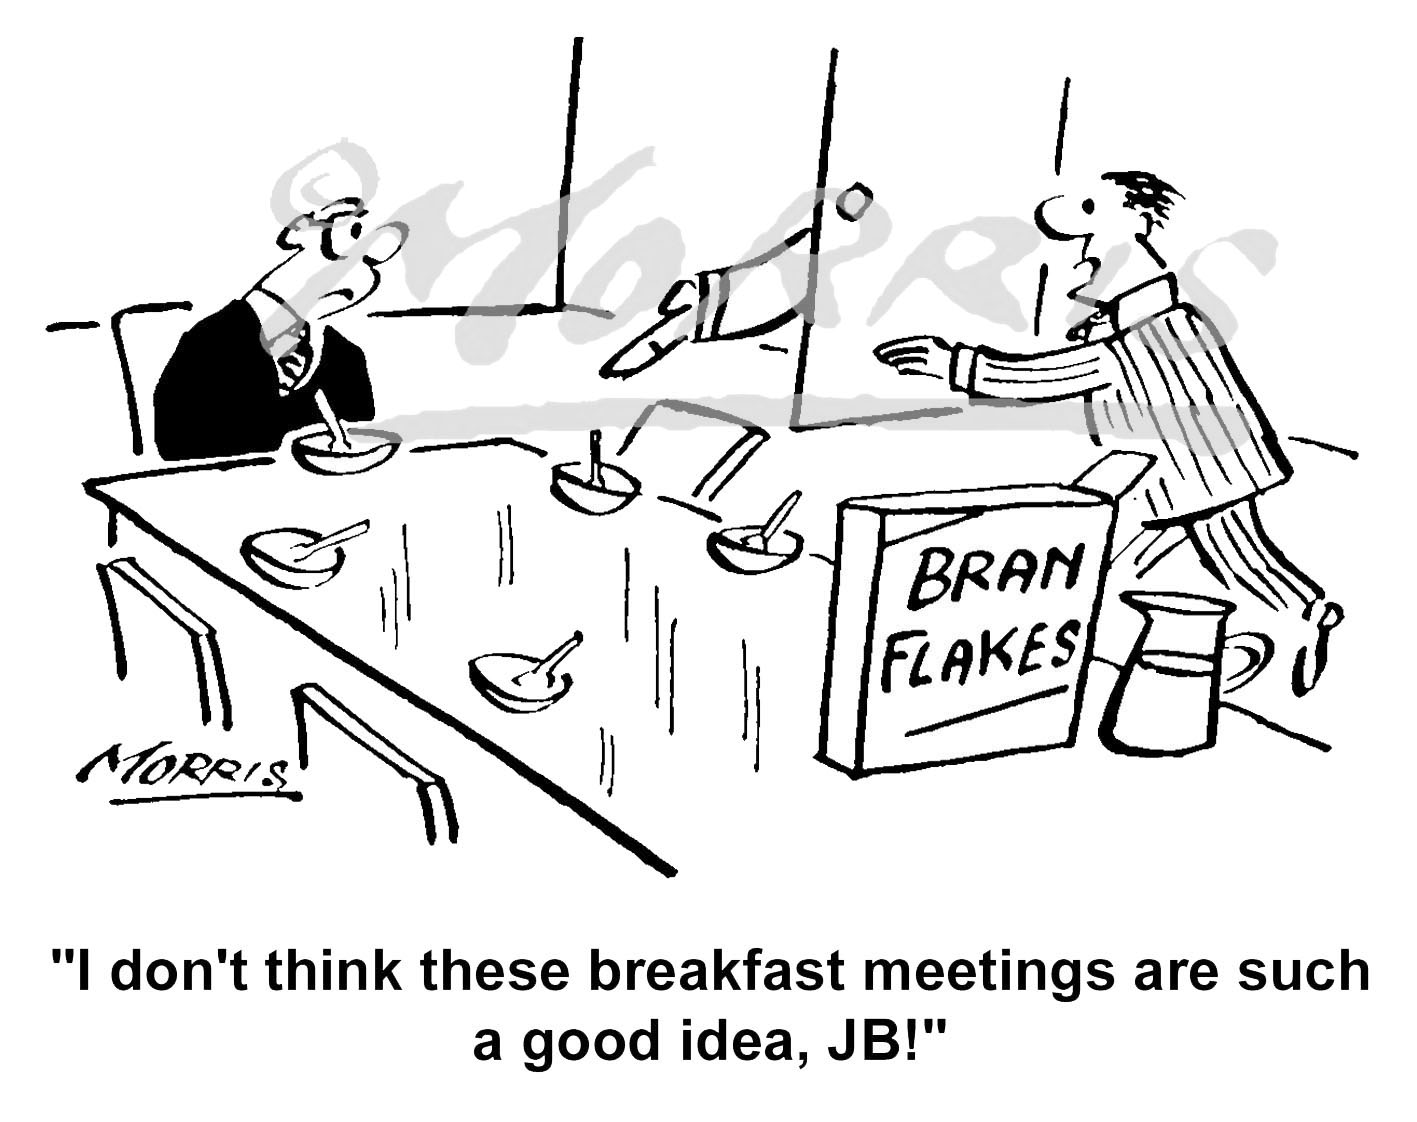 Boardroom cartoon, breakfast meeting cartoon Ref: 1489bw